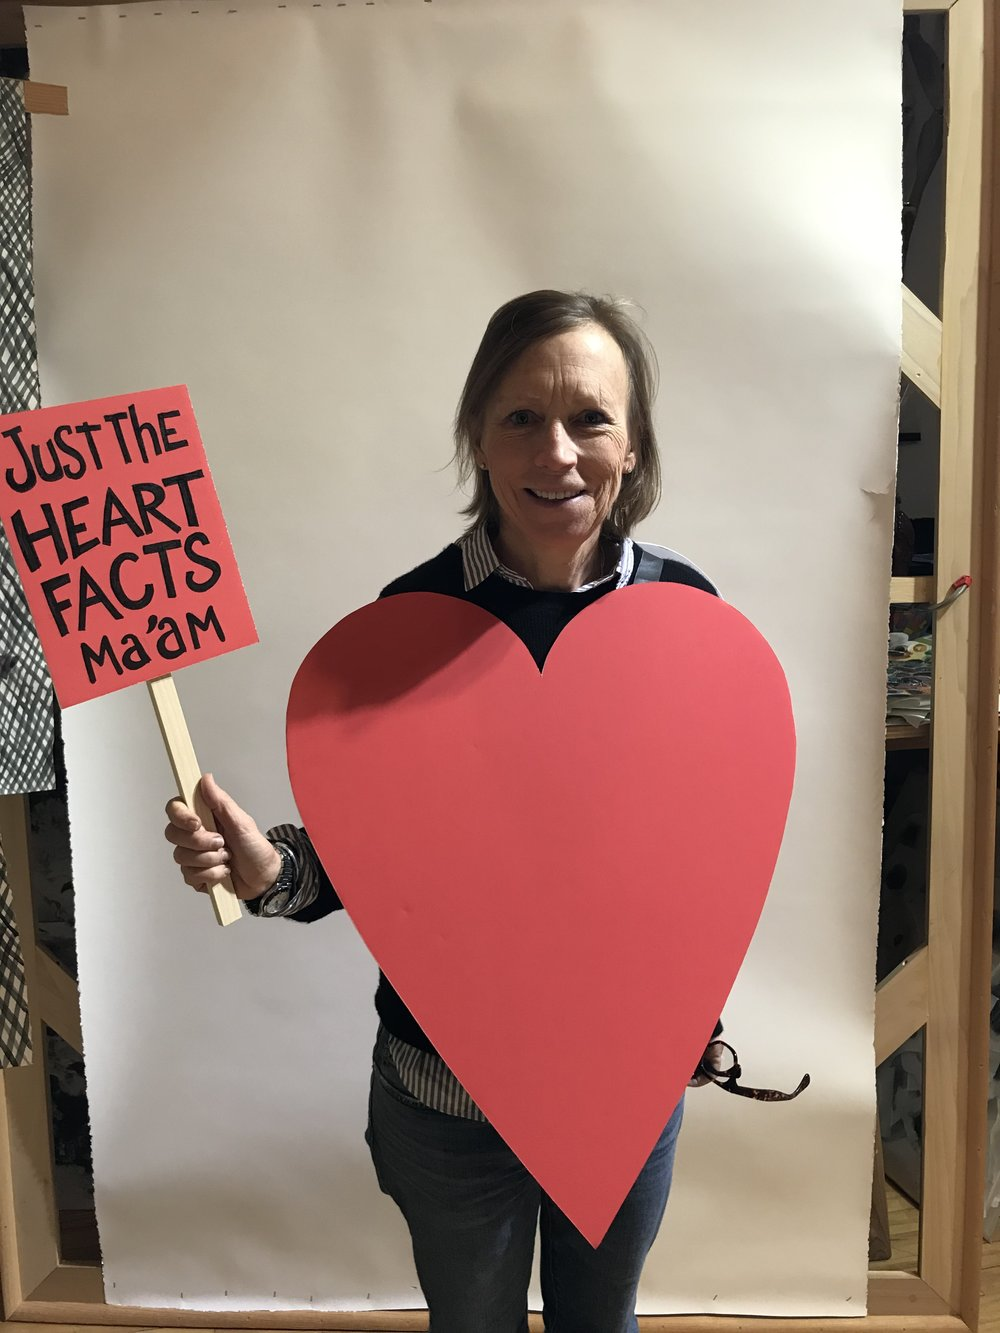 Our Mission - We at takeheart.live want to ensure 100% of U.S. women are aware that heart disease is the leading cause of death.And we take that mission to heart. Because we want to prevent heart problems and treat them more quickly.Learn More